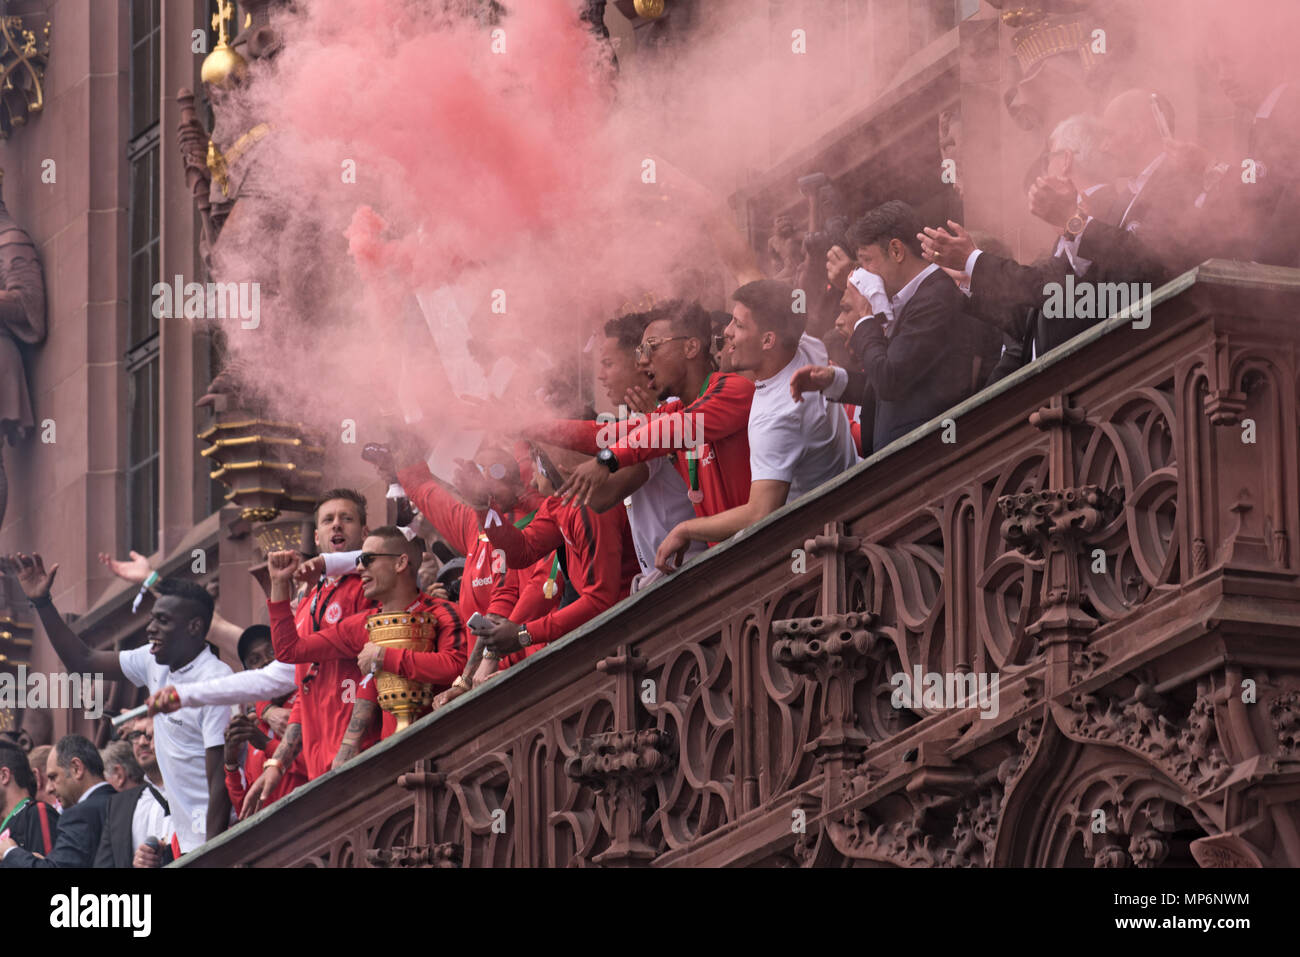 reception of the german cup winner 2018 eintracht frankfurt on the balcony of the roemer, Frankfurt am main, germany - Stock Image